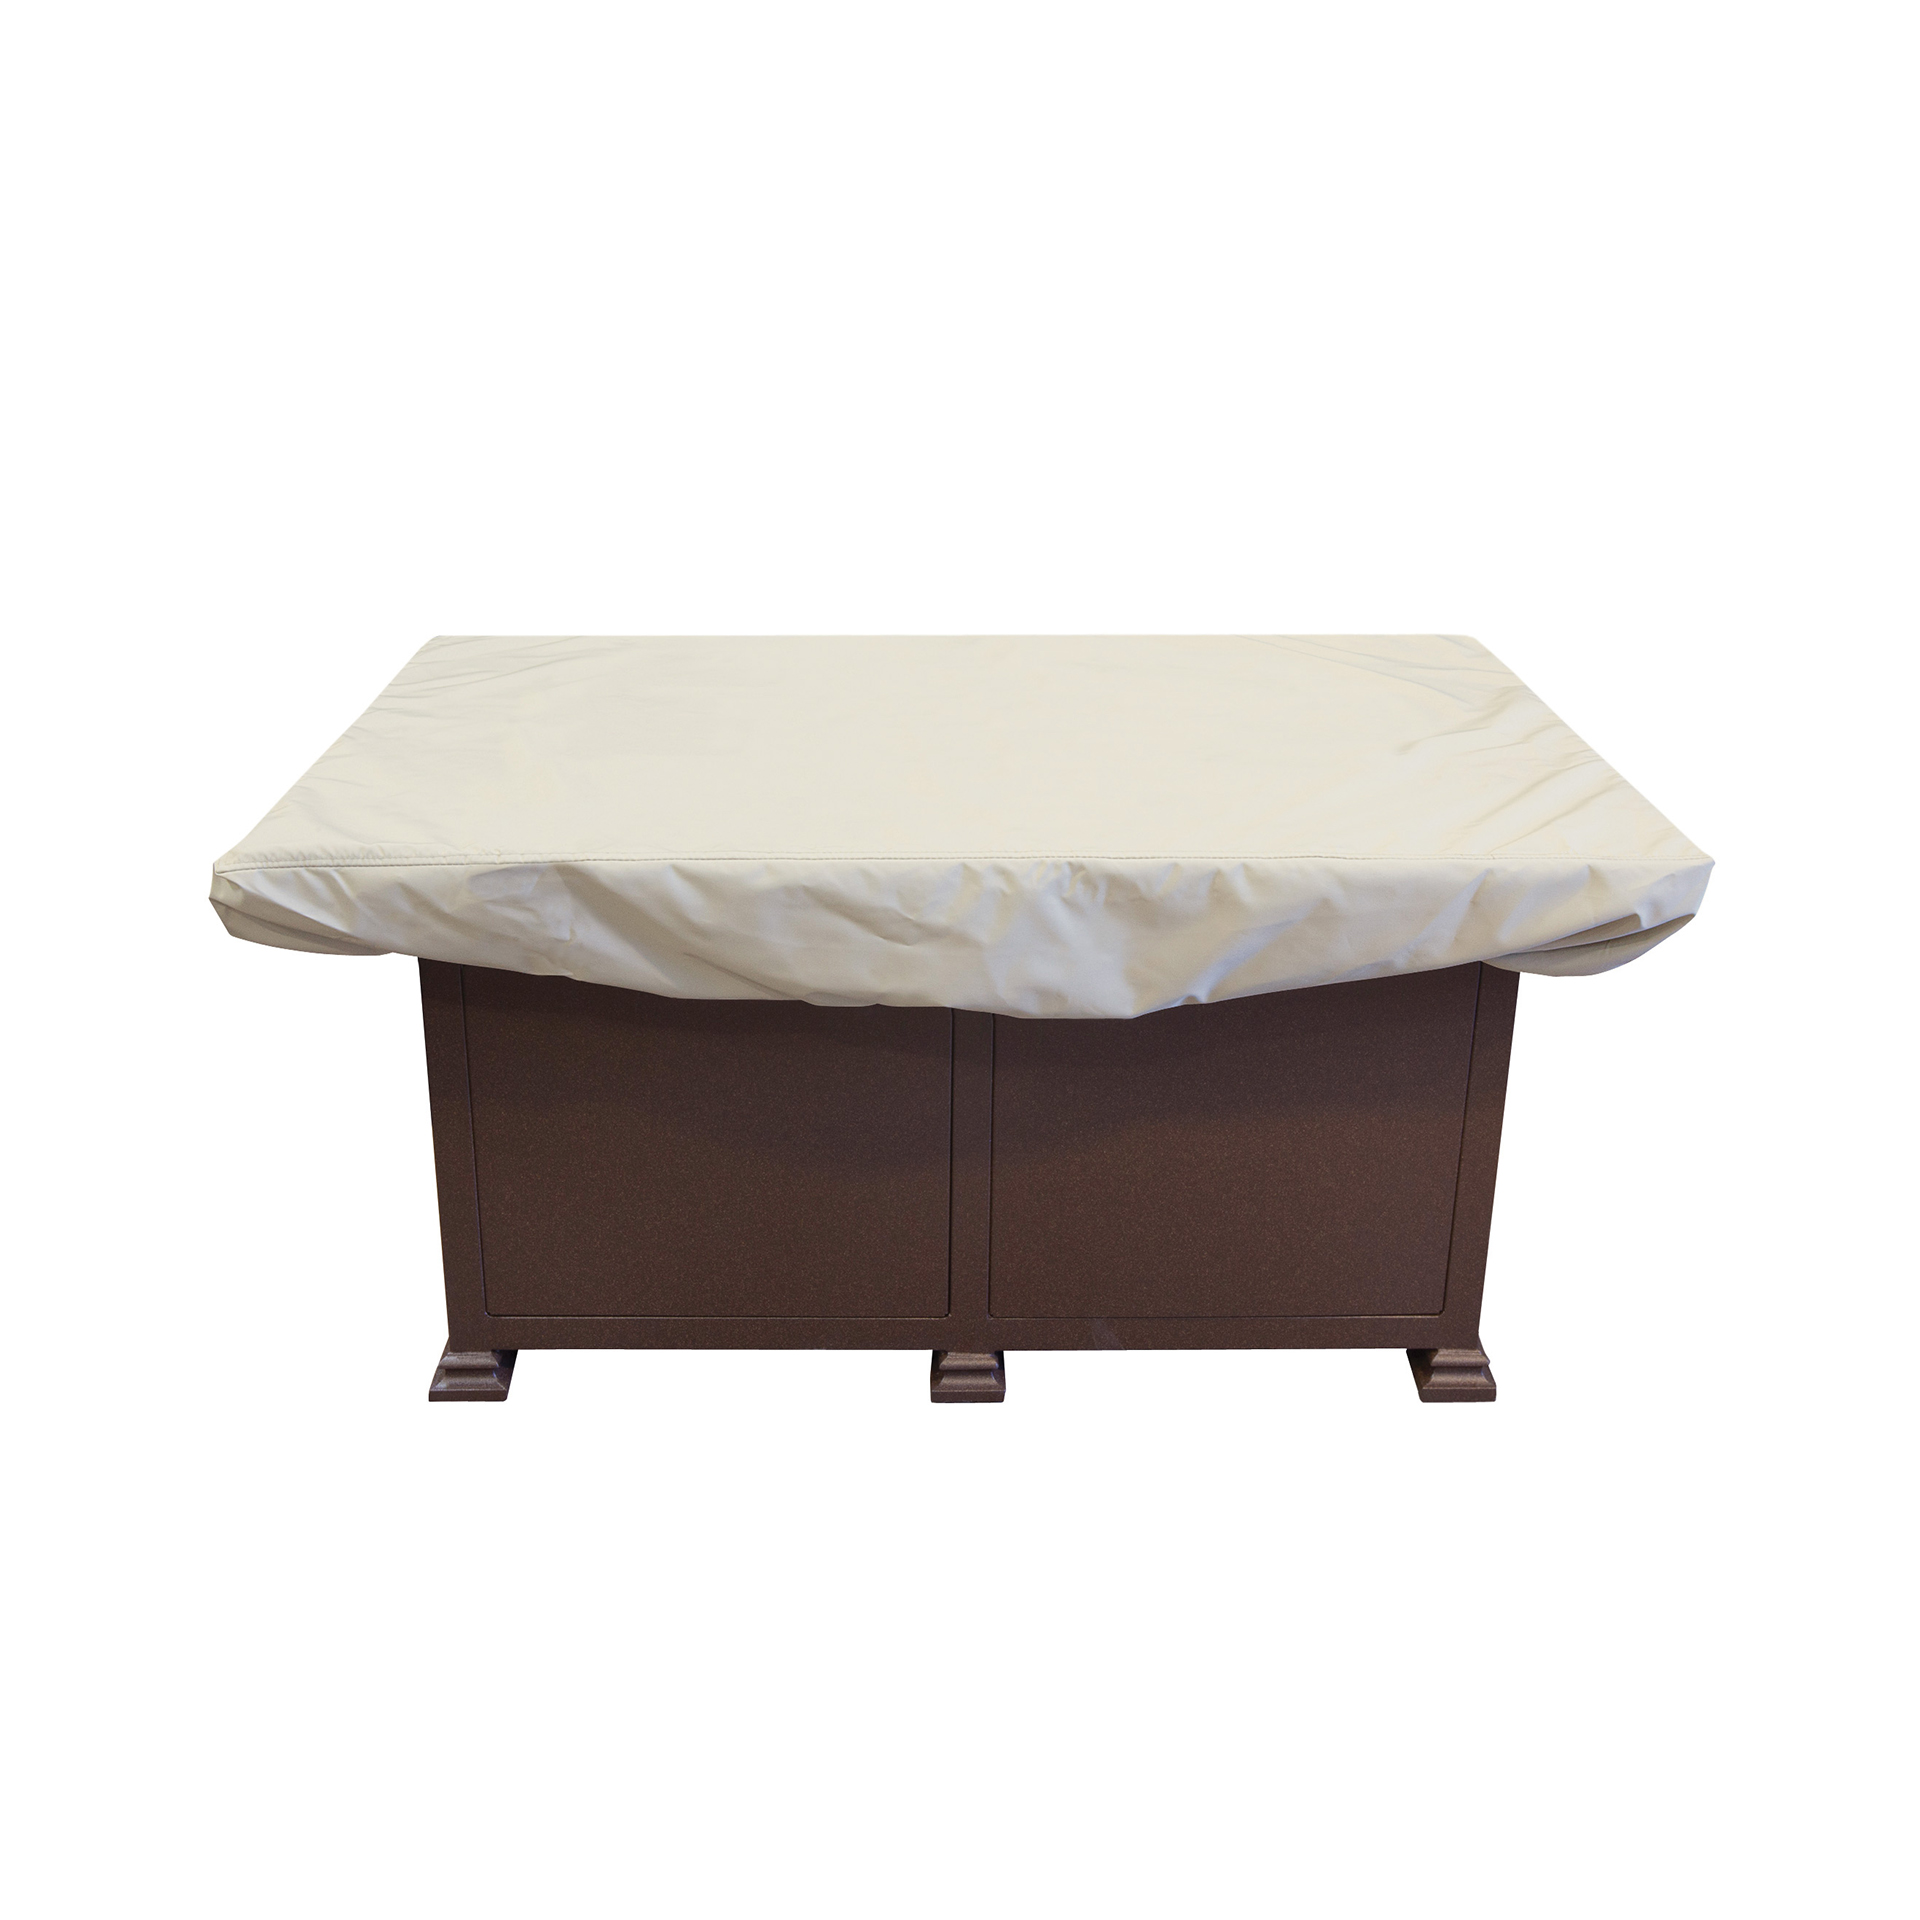 Treasure Garden 50x30 Quot Rectangular Chat Table Or Fire Pit